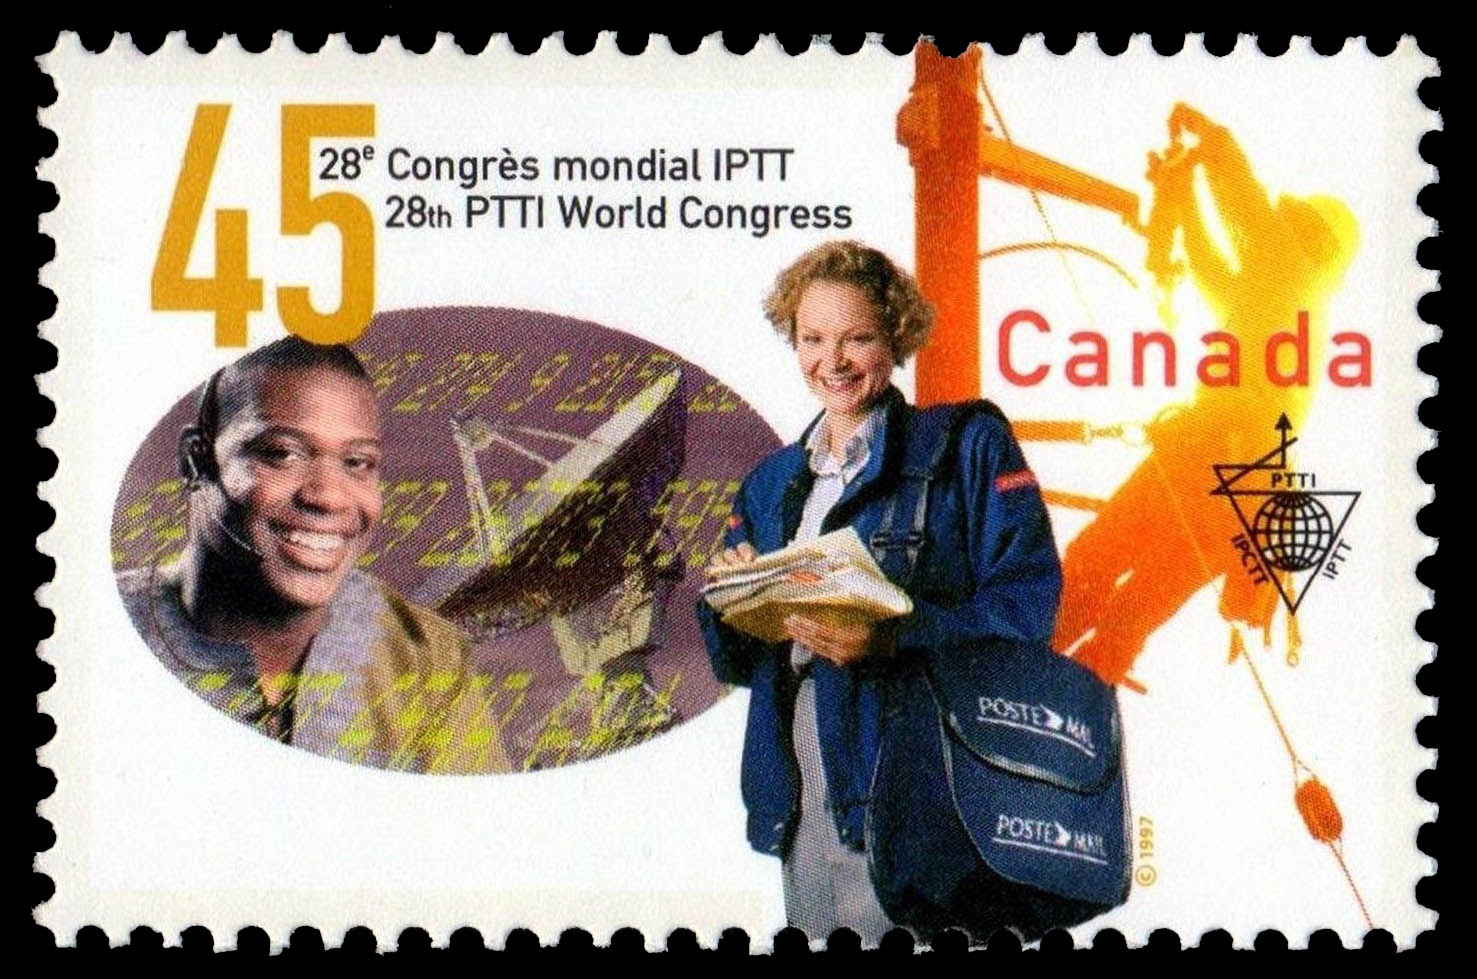 28th Postal, Telegraph and Telephone International World Congress Canada Postage Stamp